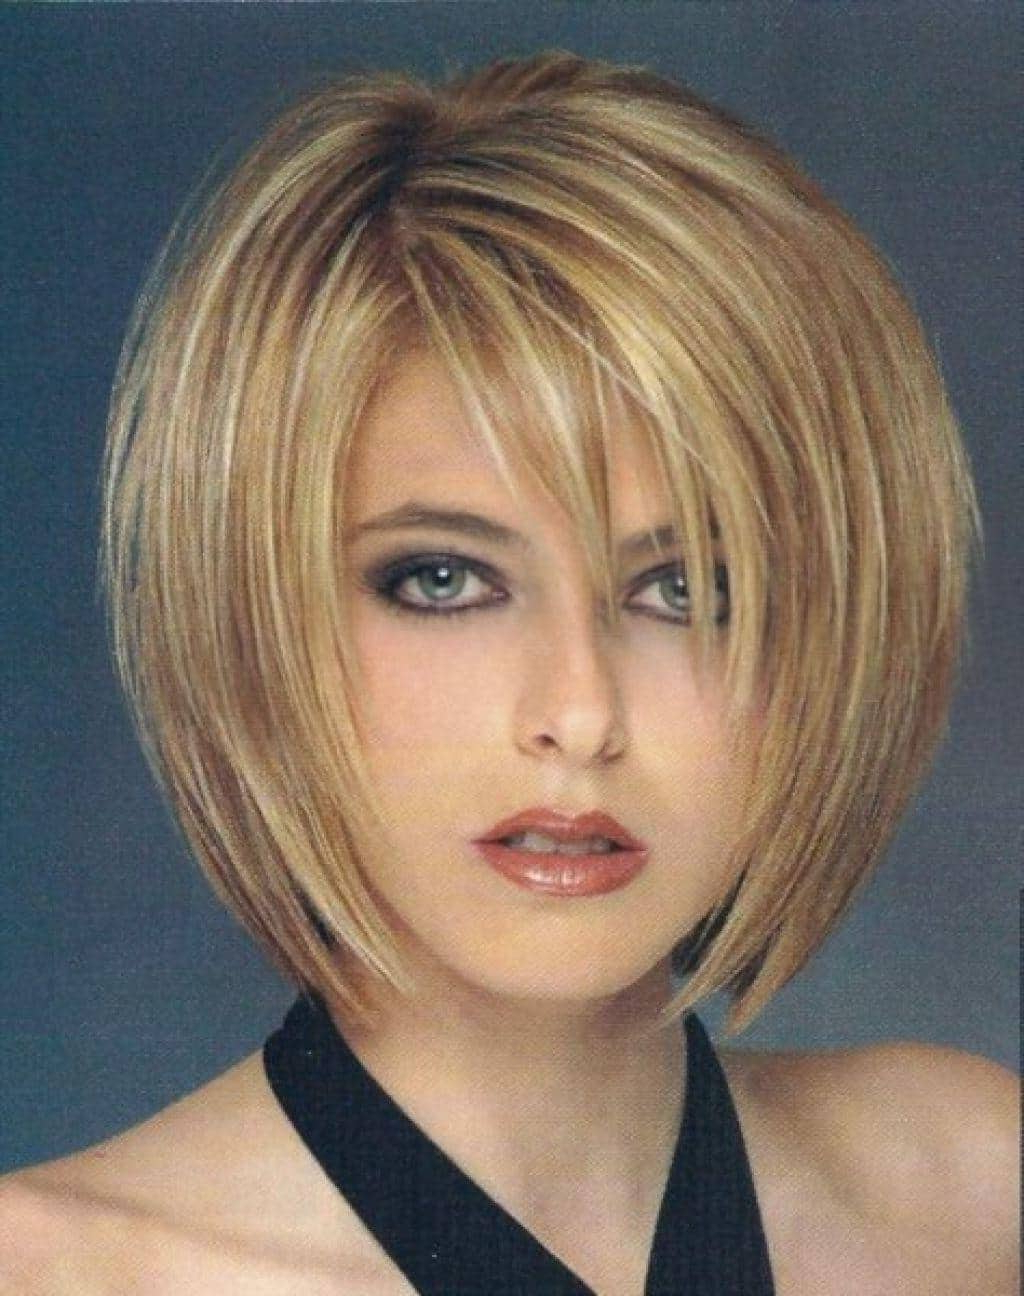 Short Bob Haircuts For Thin Hair – Short And Cuts Hairstyles Inside Voluminous Short Bob Haircuts (View 15 of 20)